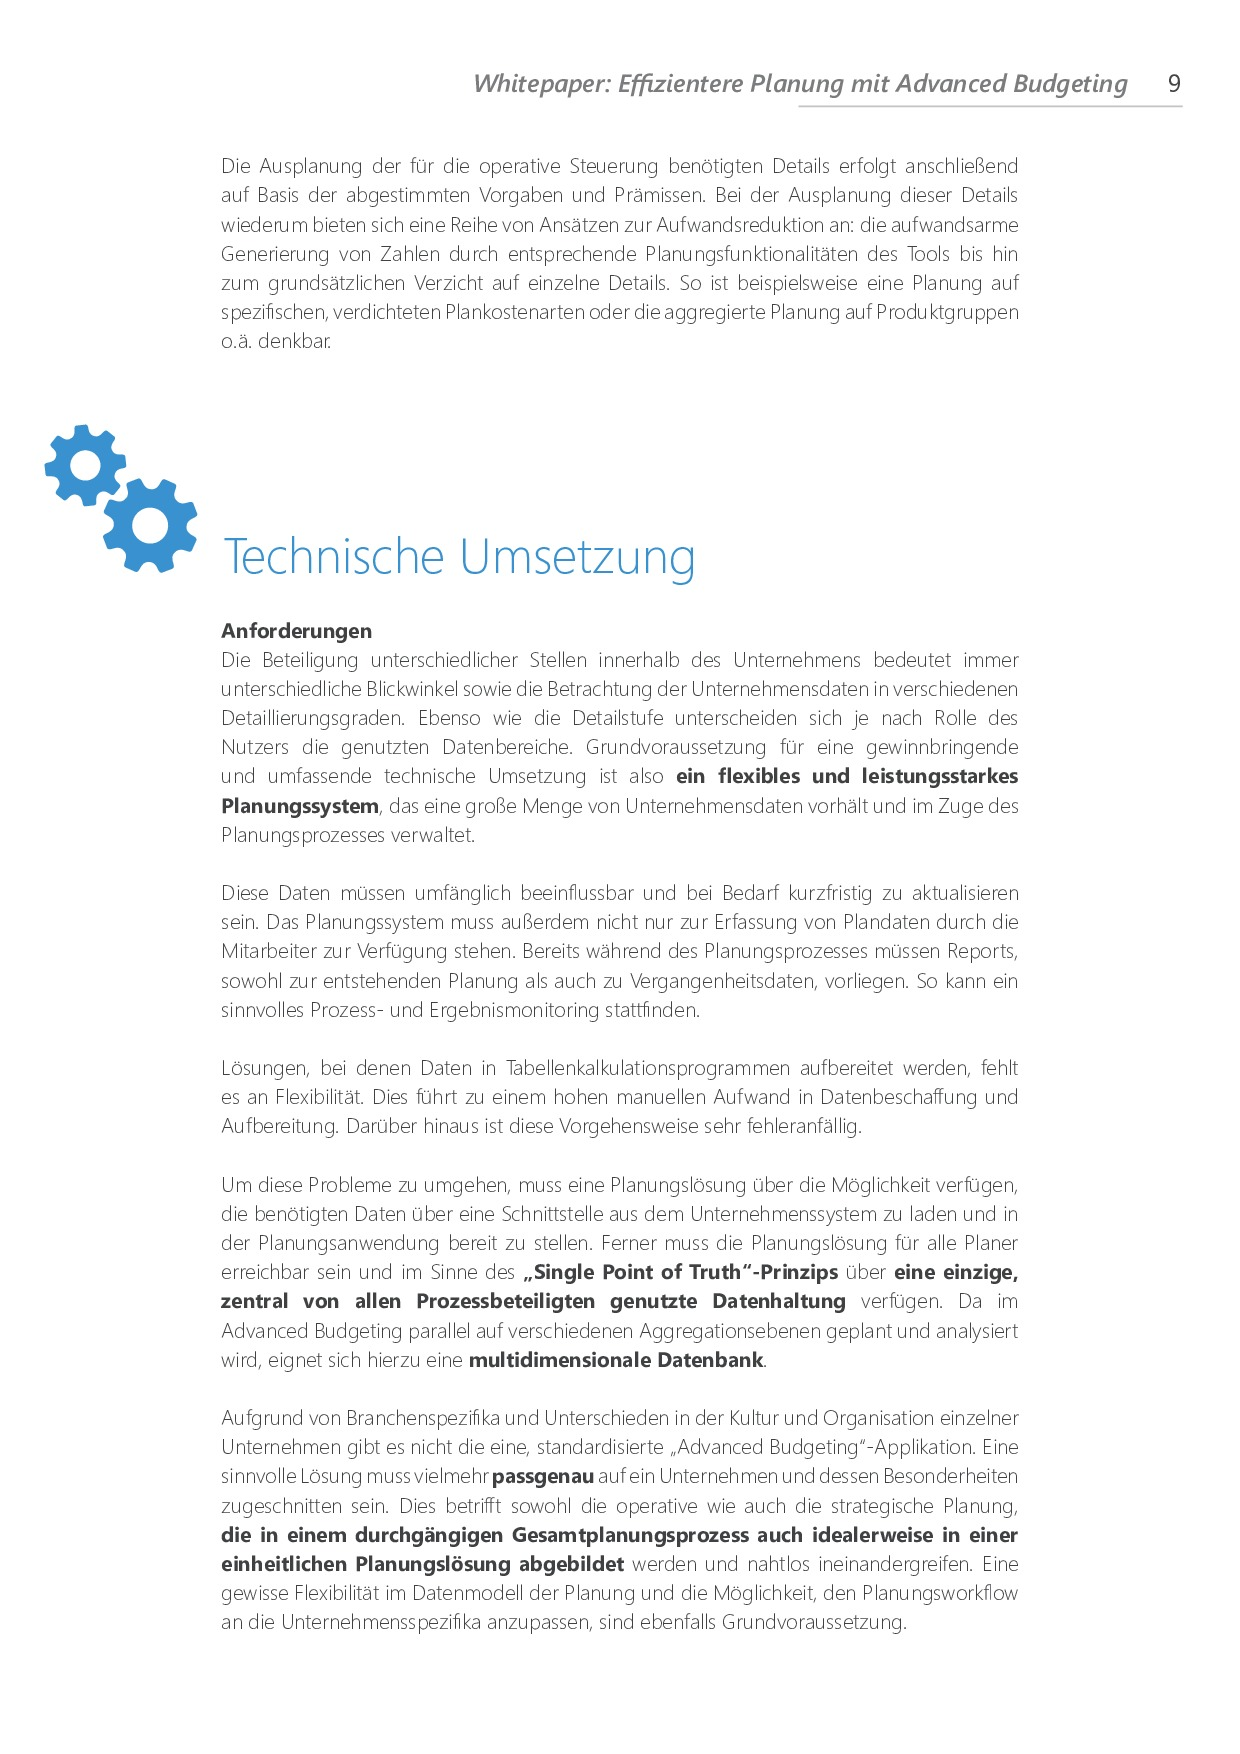 Effizientere Planung mit Advanced Budgeting | Page 9